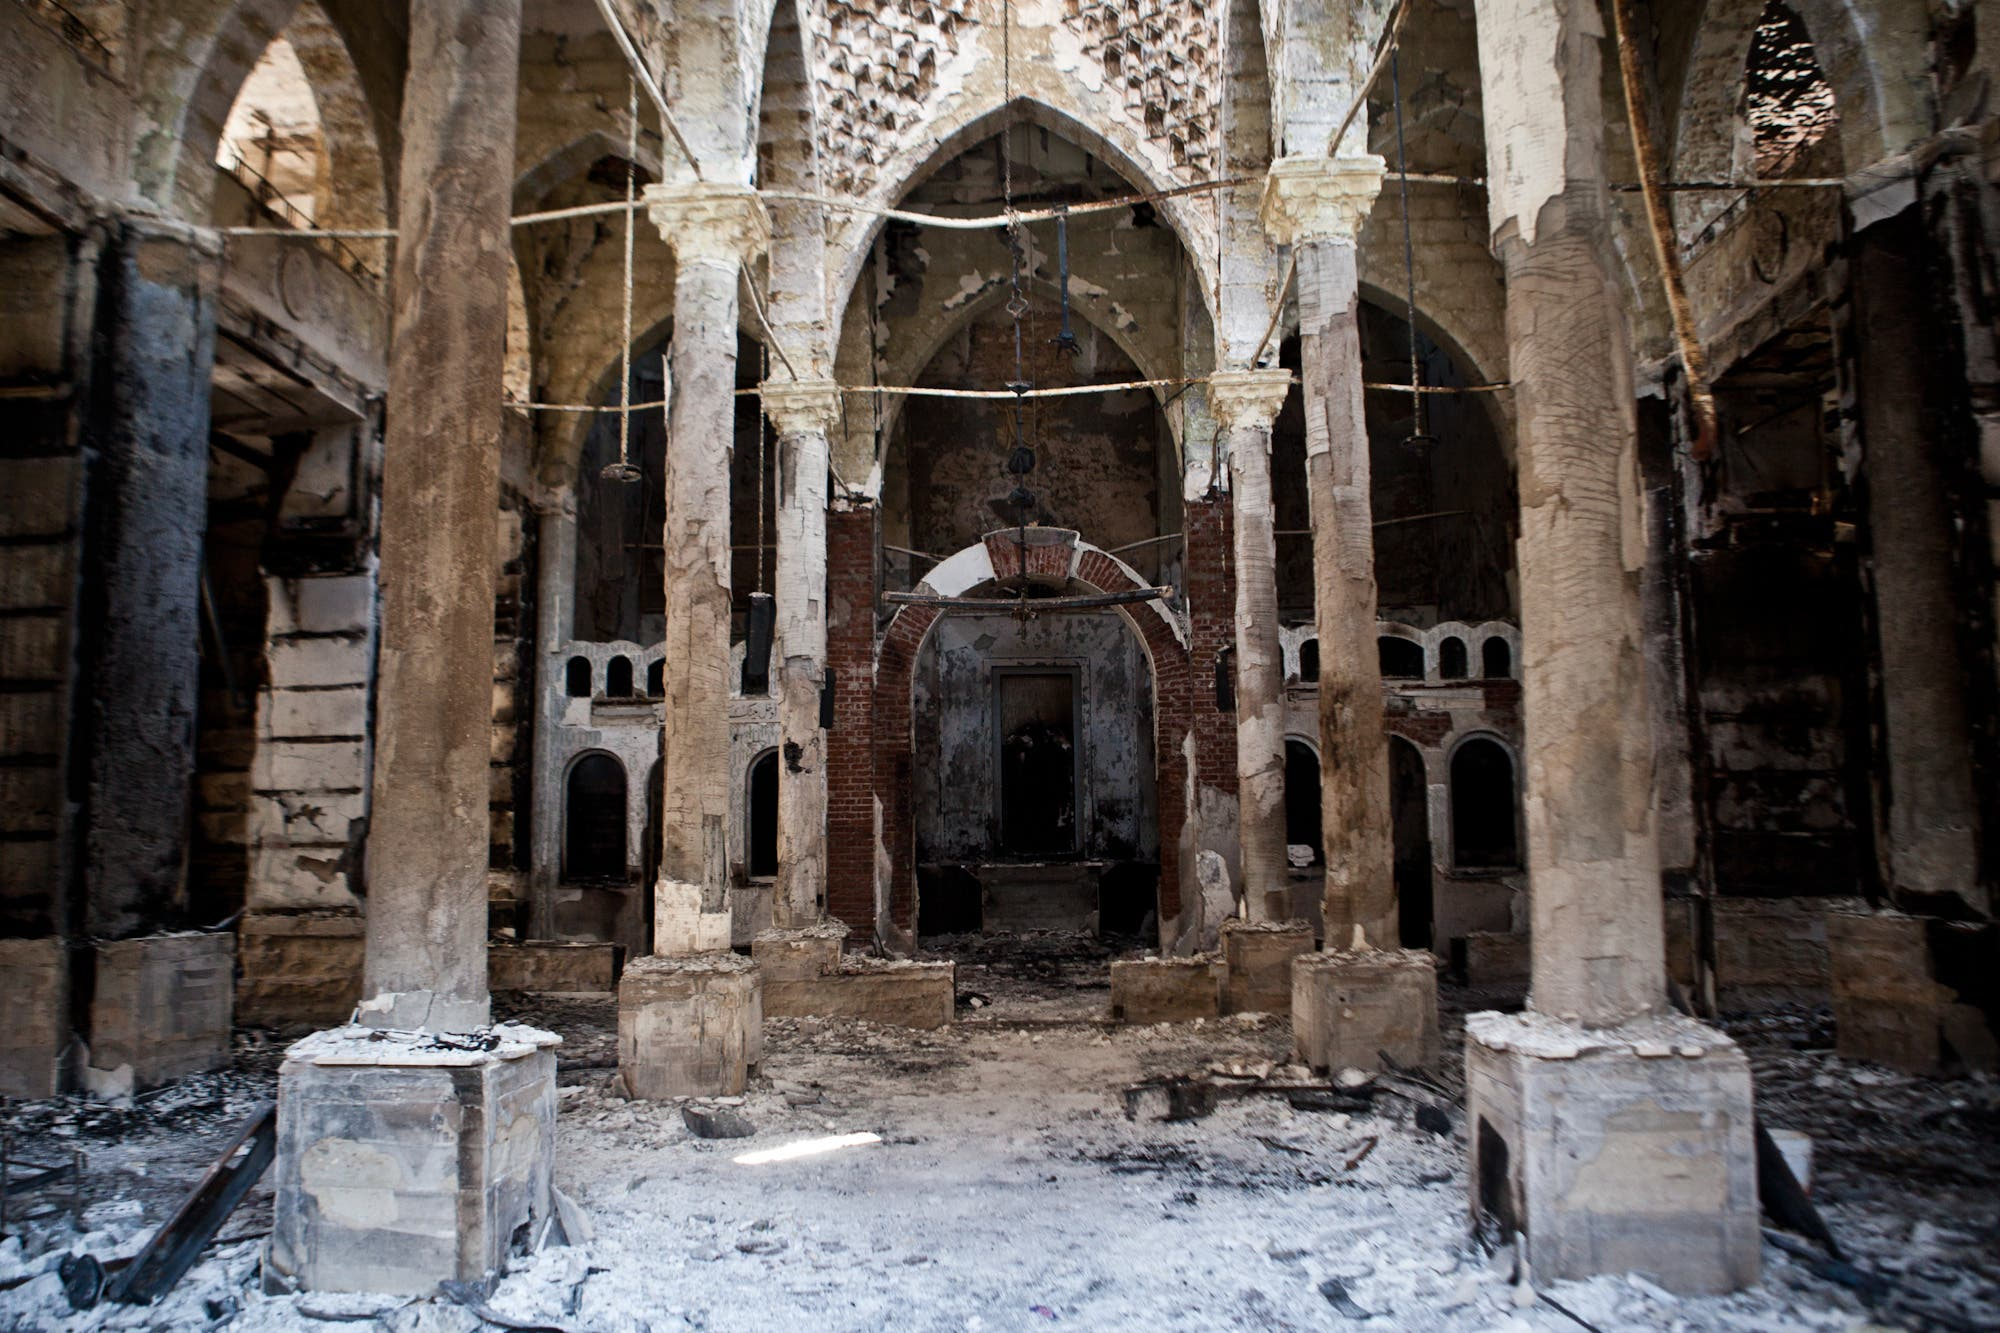 Amir Tadros coptic Church in Minya, some 250 kms south of Cairo, was set ablaze on August 14. Egypt's Christians are living in fear after a string of attacks against churches, businesses and homes of Christians (AFP/VIRGNIE NGUYEN HOANG)